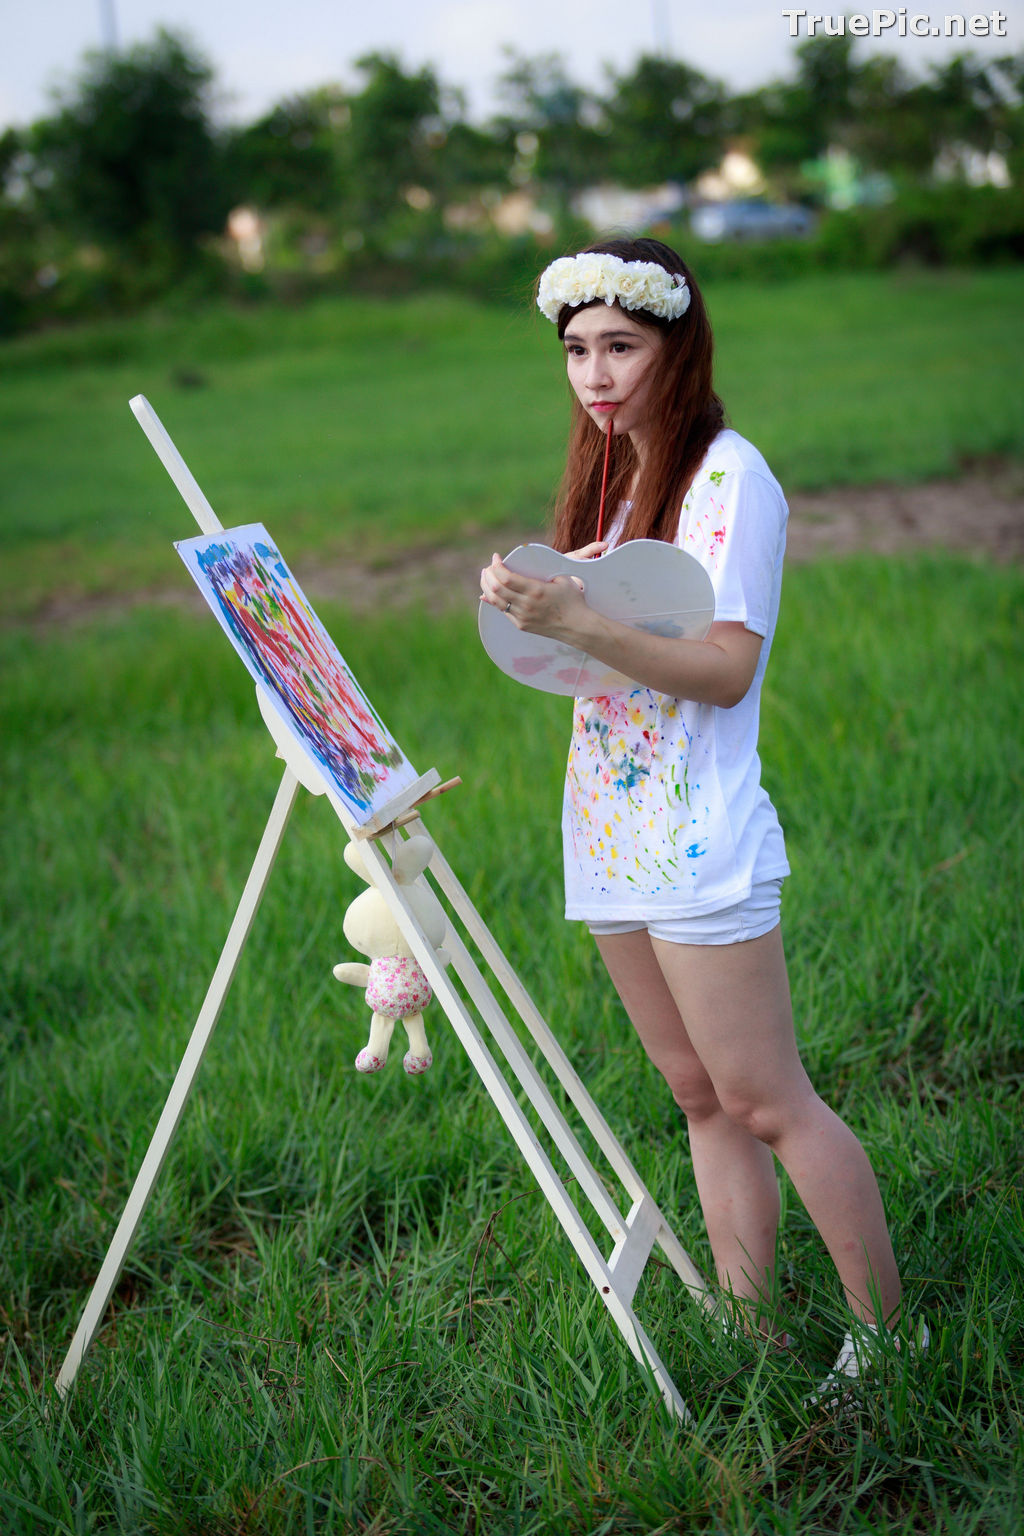 Image Vietnamese Model - How To Beautiful Angel Become An Painter - TruePic.net - Picture-2